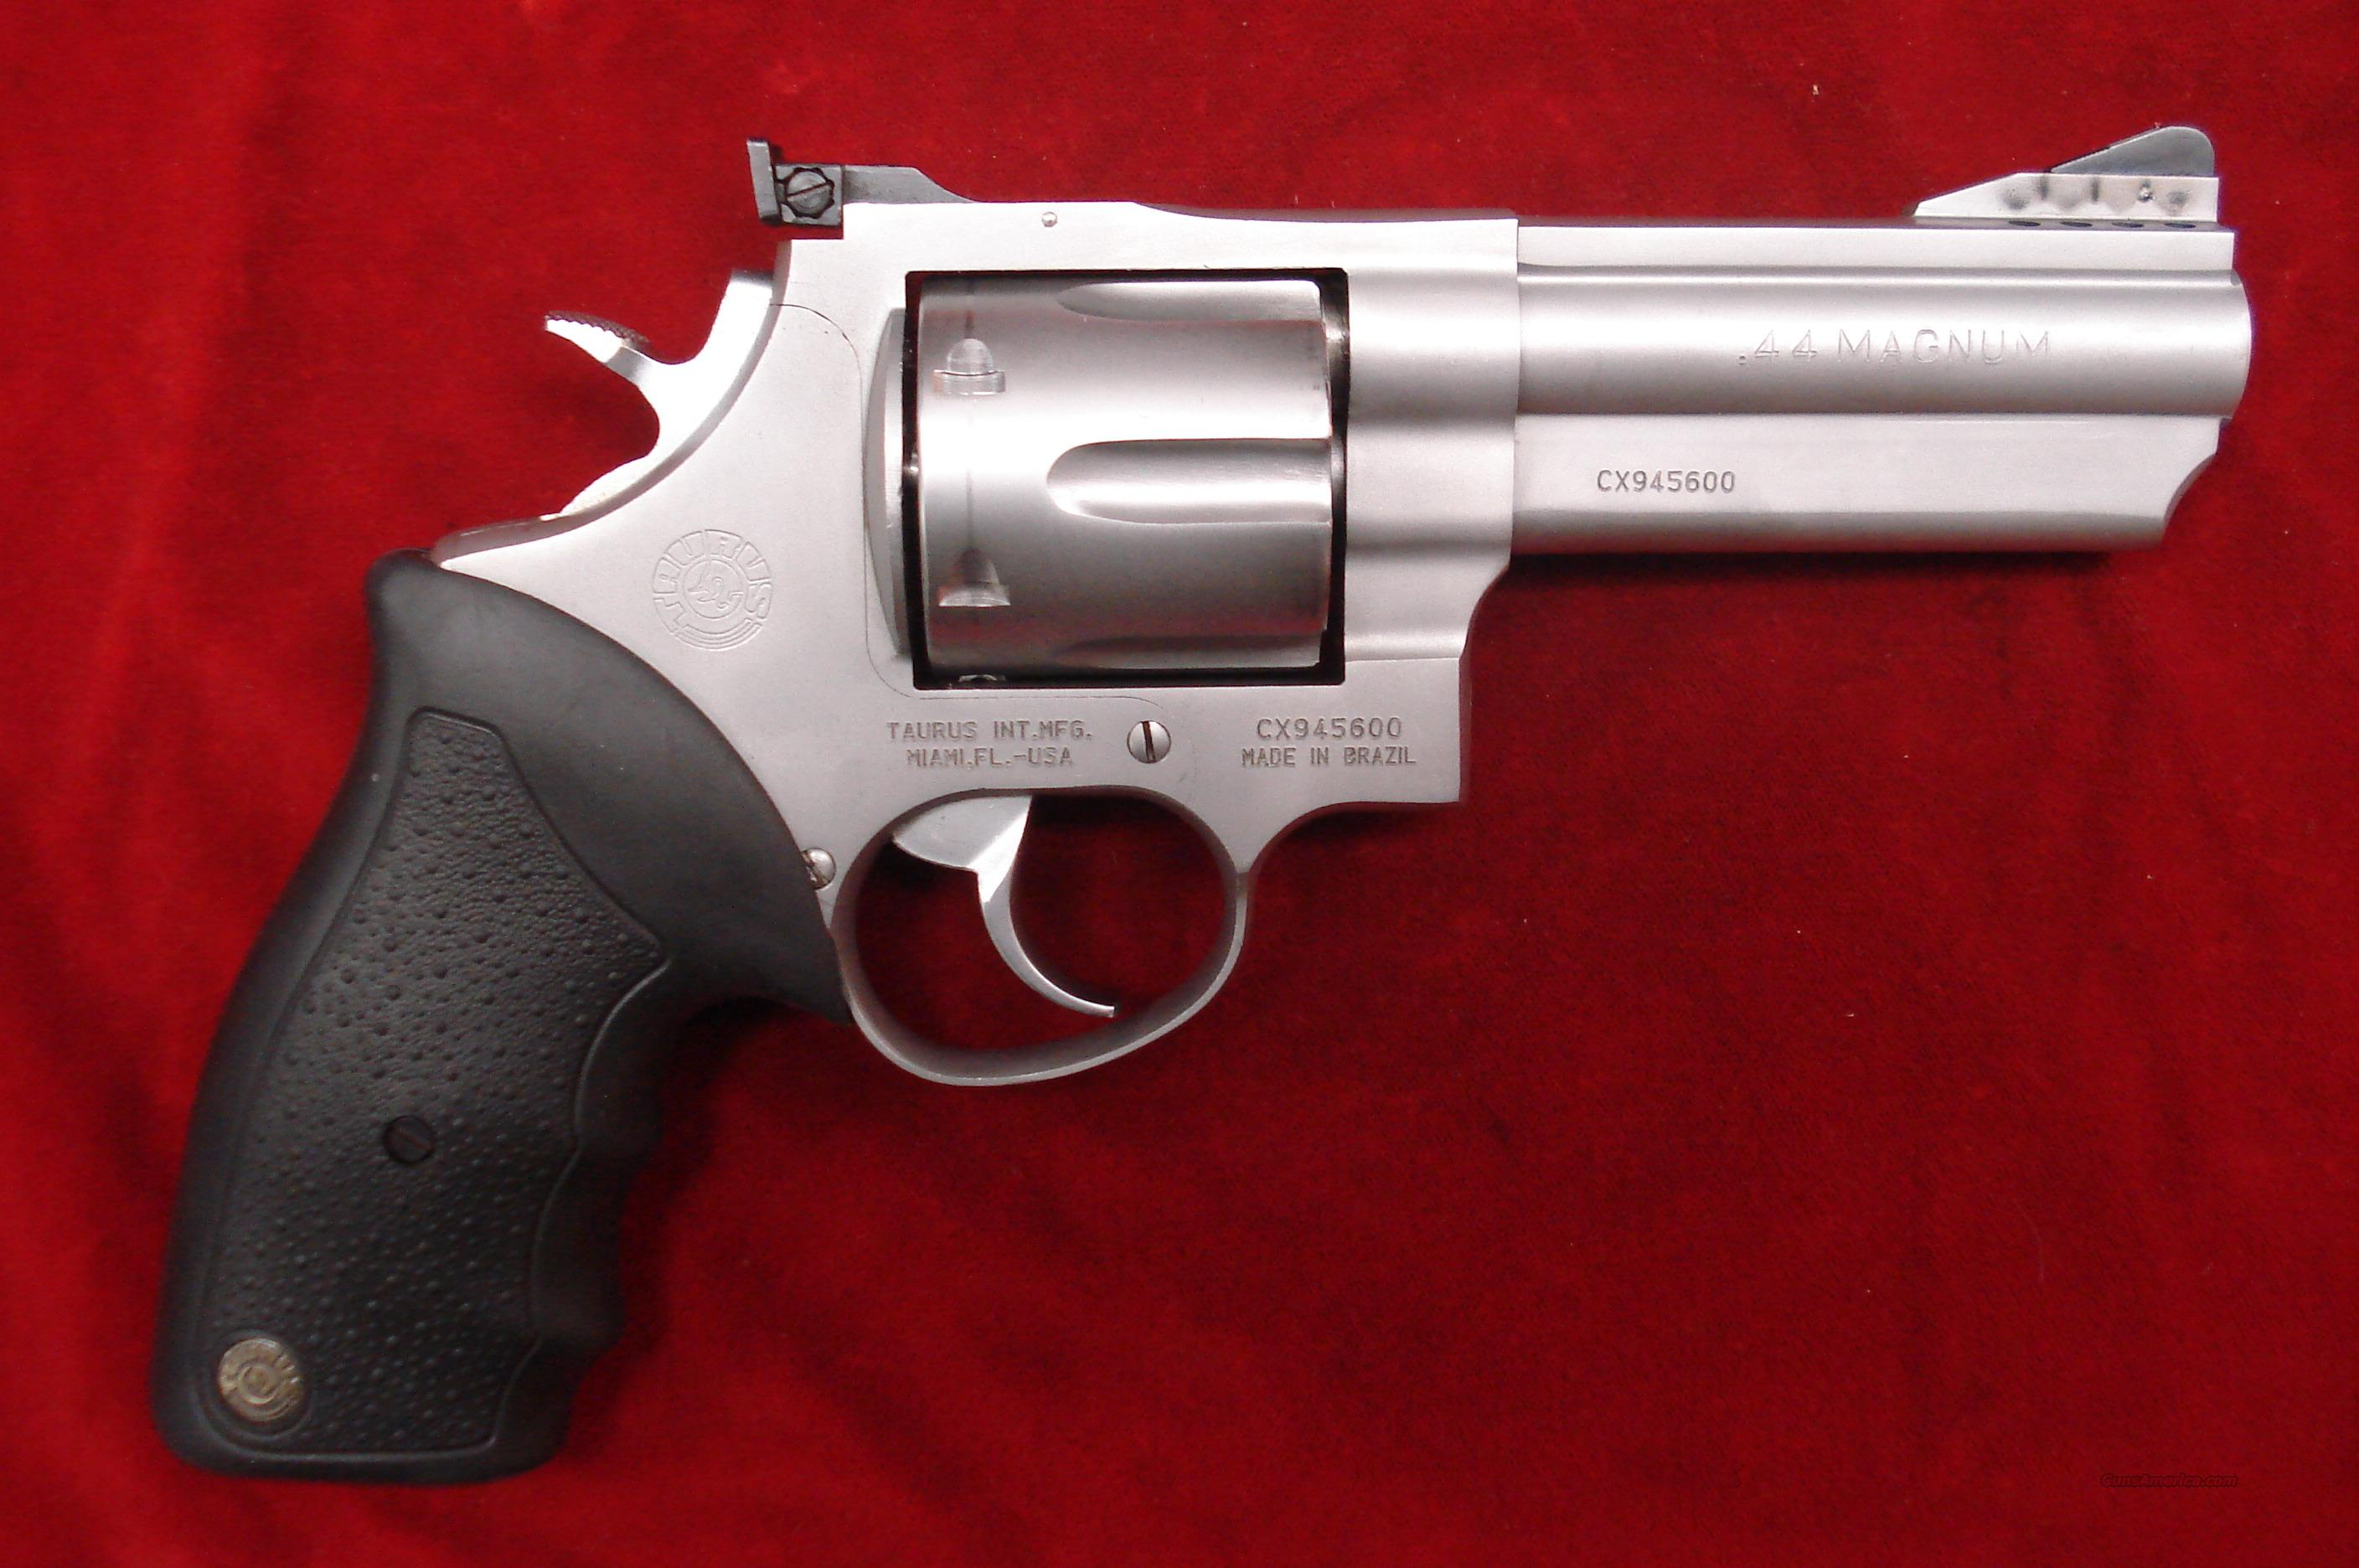 TAURUS 44 MAG PORTED STAINLESS REVOLVER USED  Guns > Pistols > Taurus Pistols/Revolvers > Revolvers